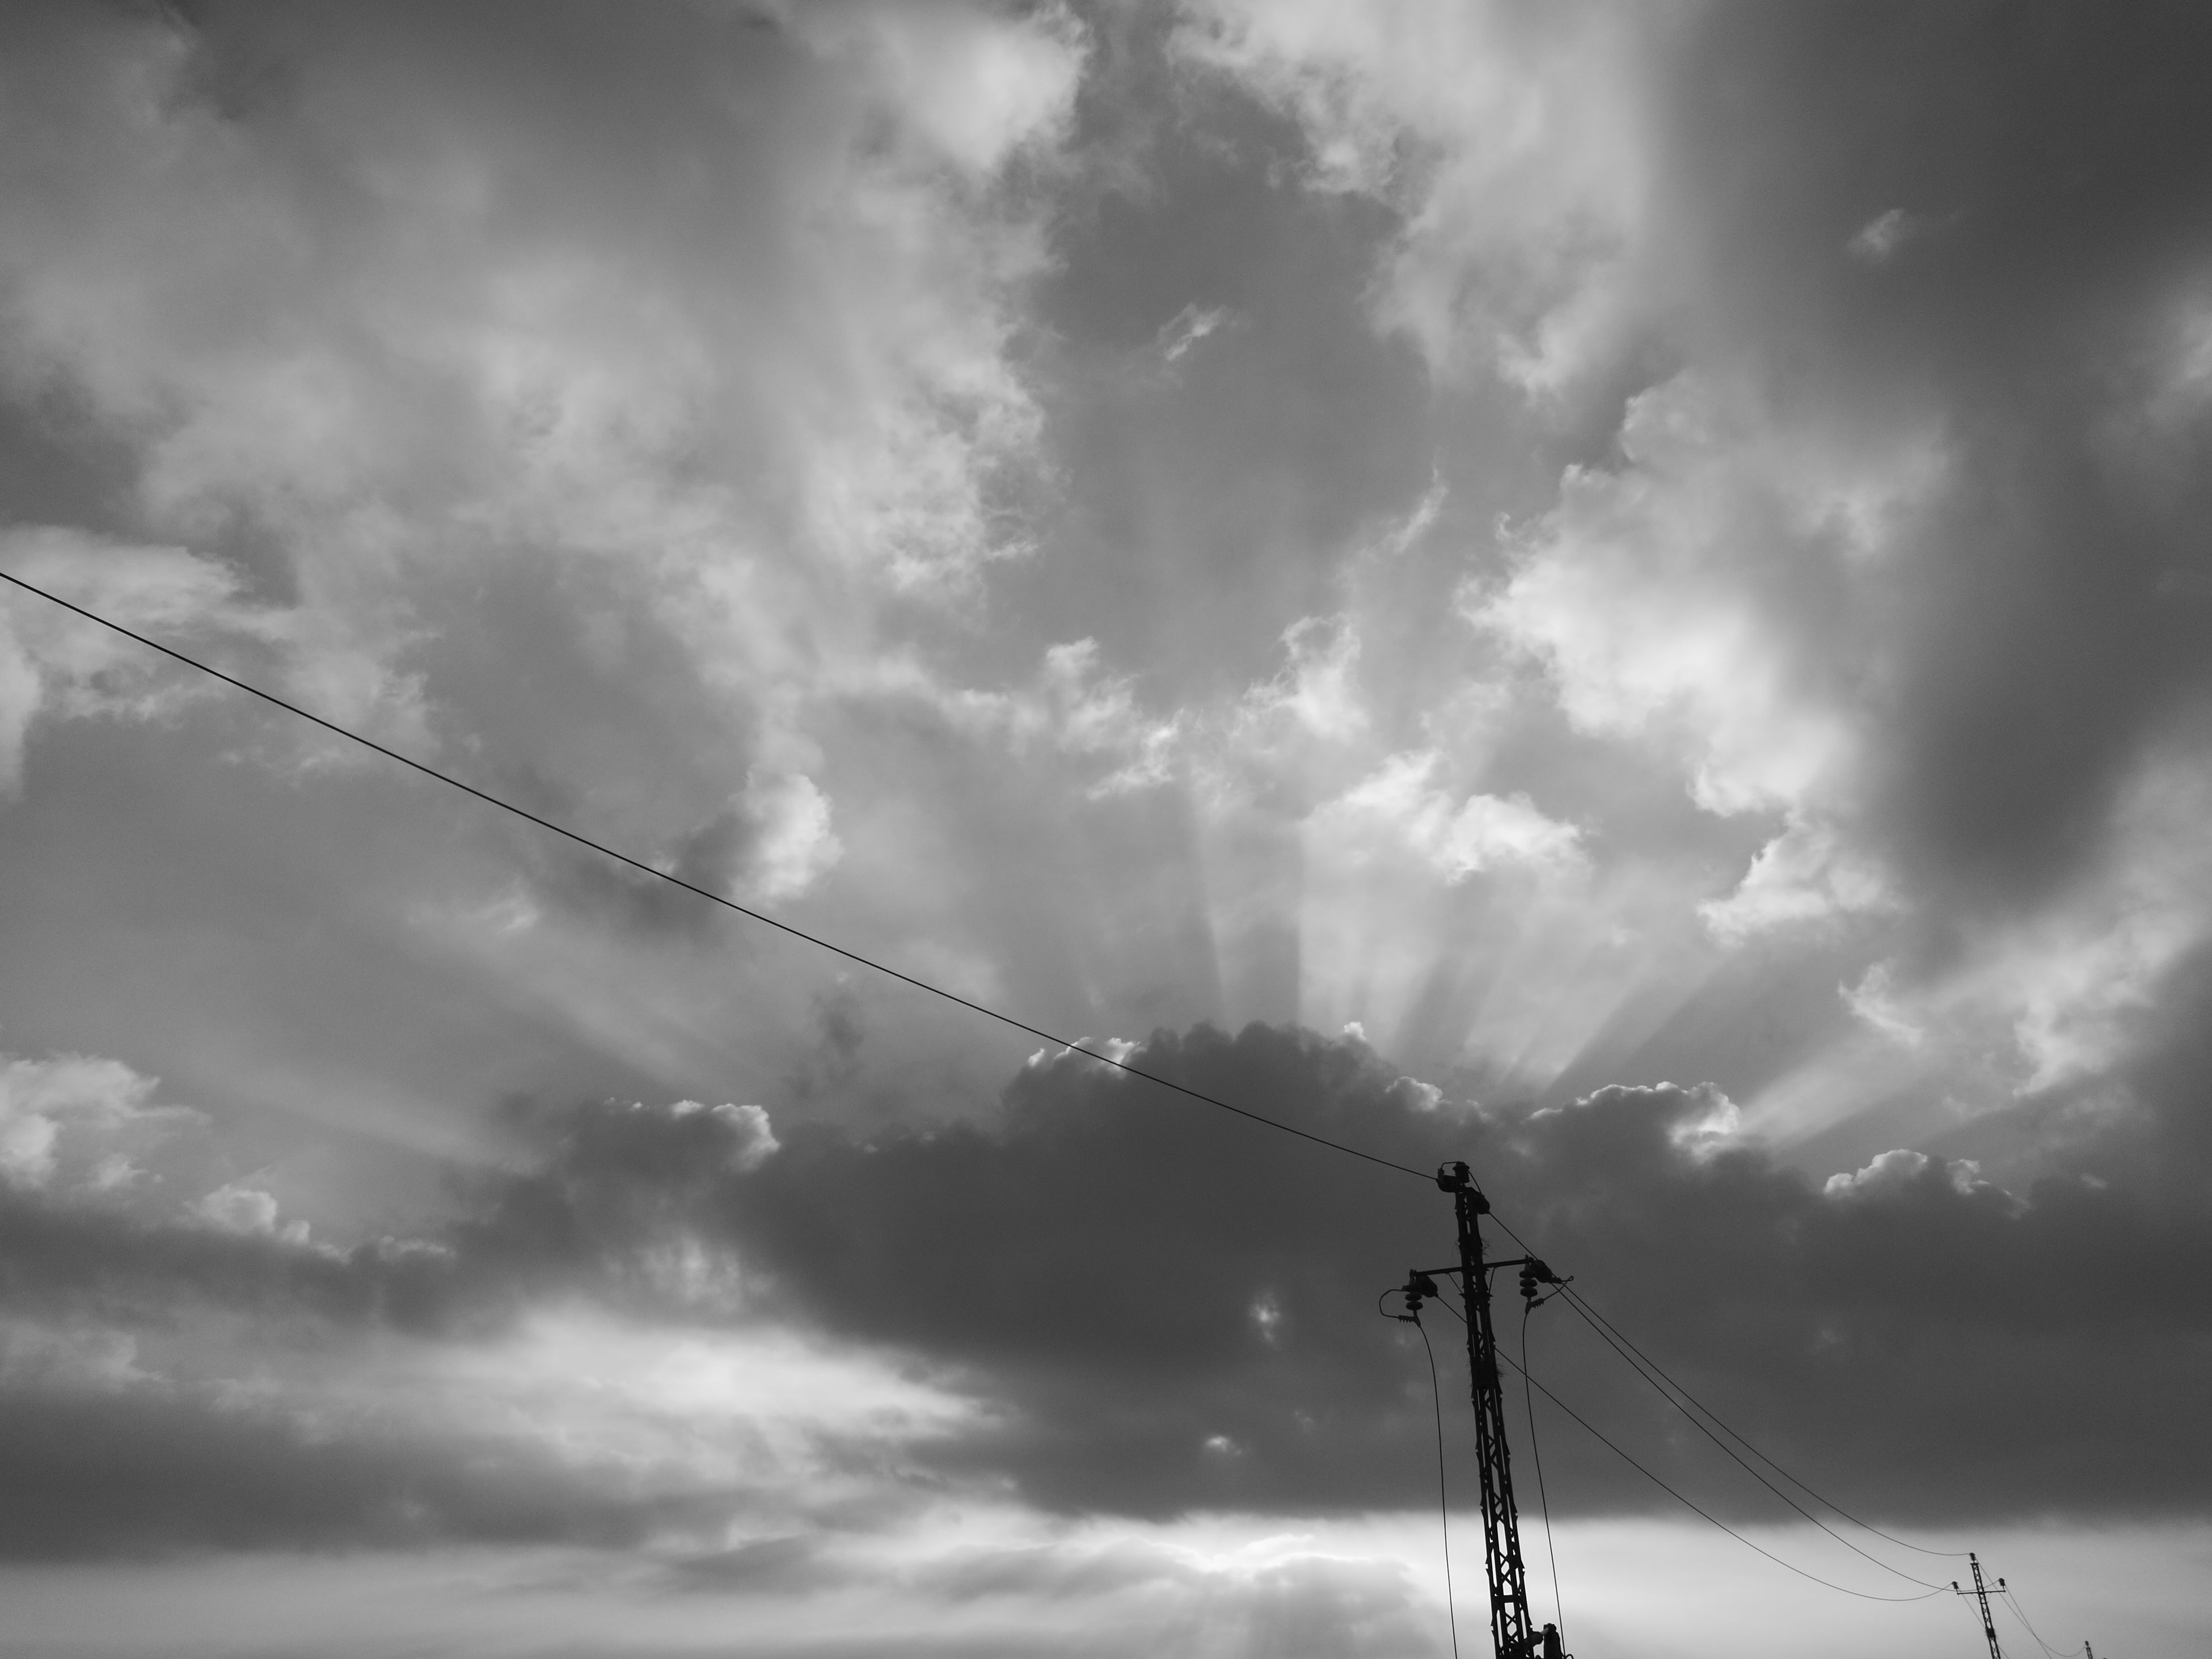 low angle view, sky, cable, cloud, connection, technology, power line, crane - construction machinery, day, cloud - sky, high section, development, power supply, nature, outdoors, tall, scenics, progress, tranquility, telephone line, cloudy, antenna, no people, cloudscape, telephone pole, long